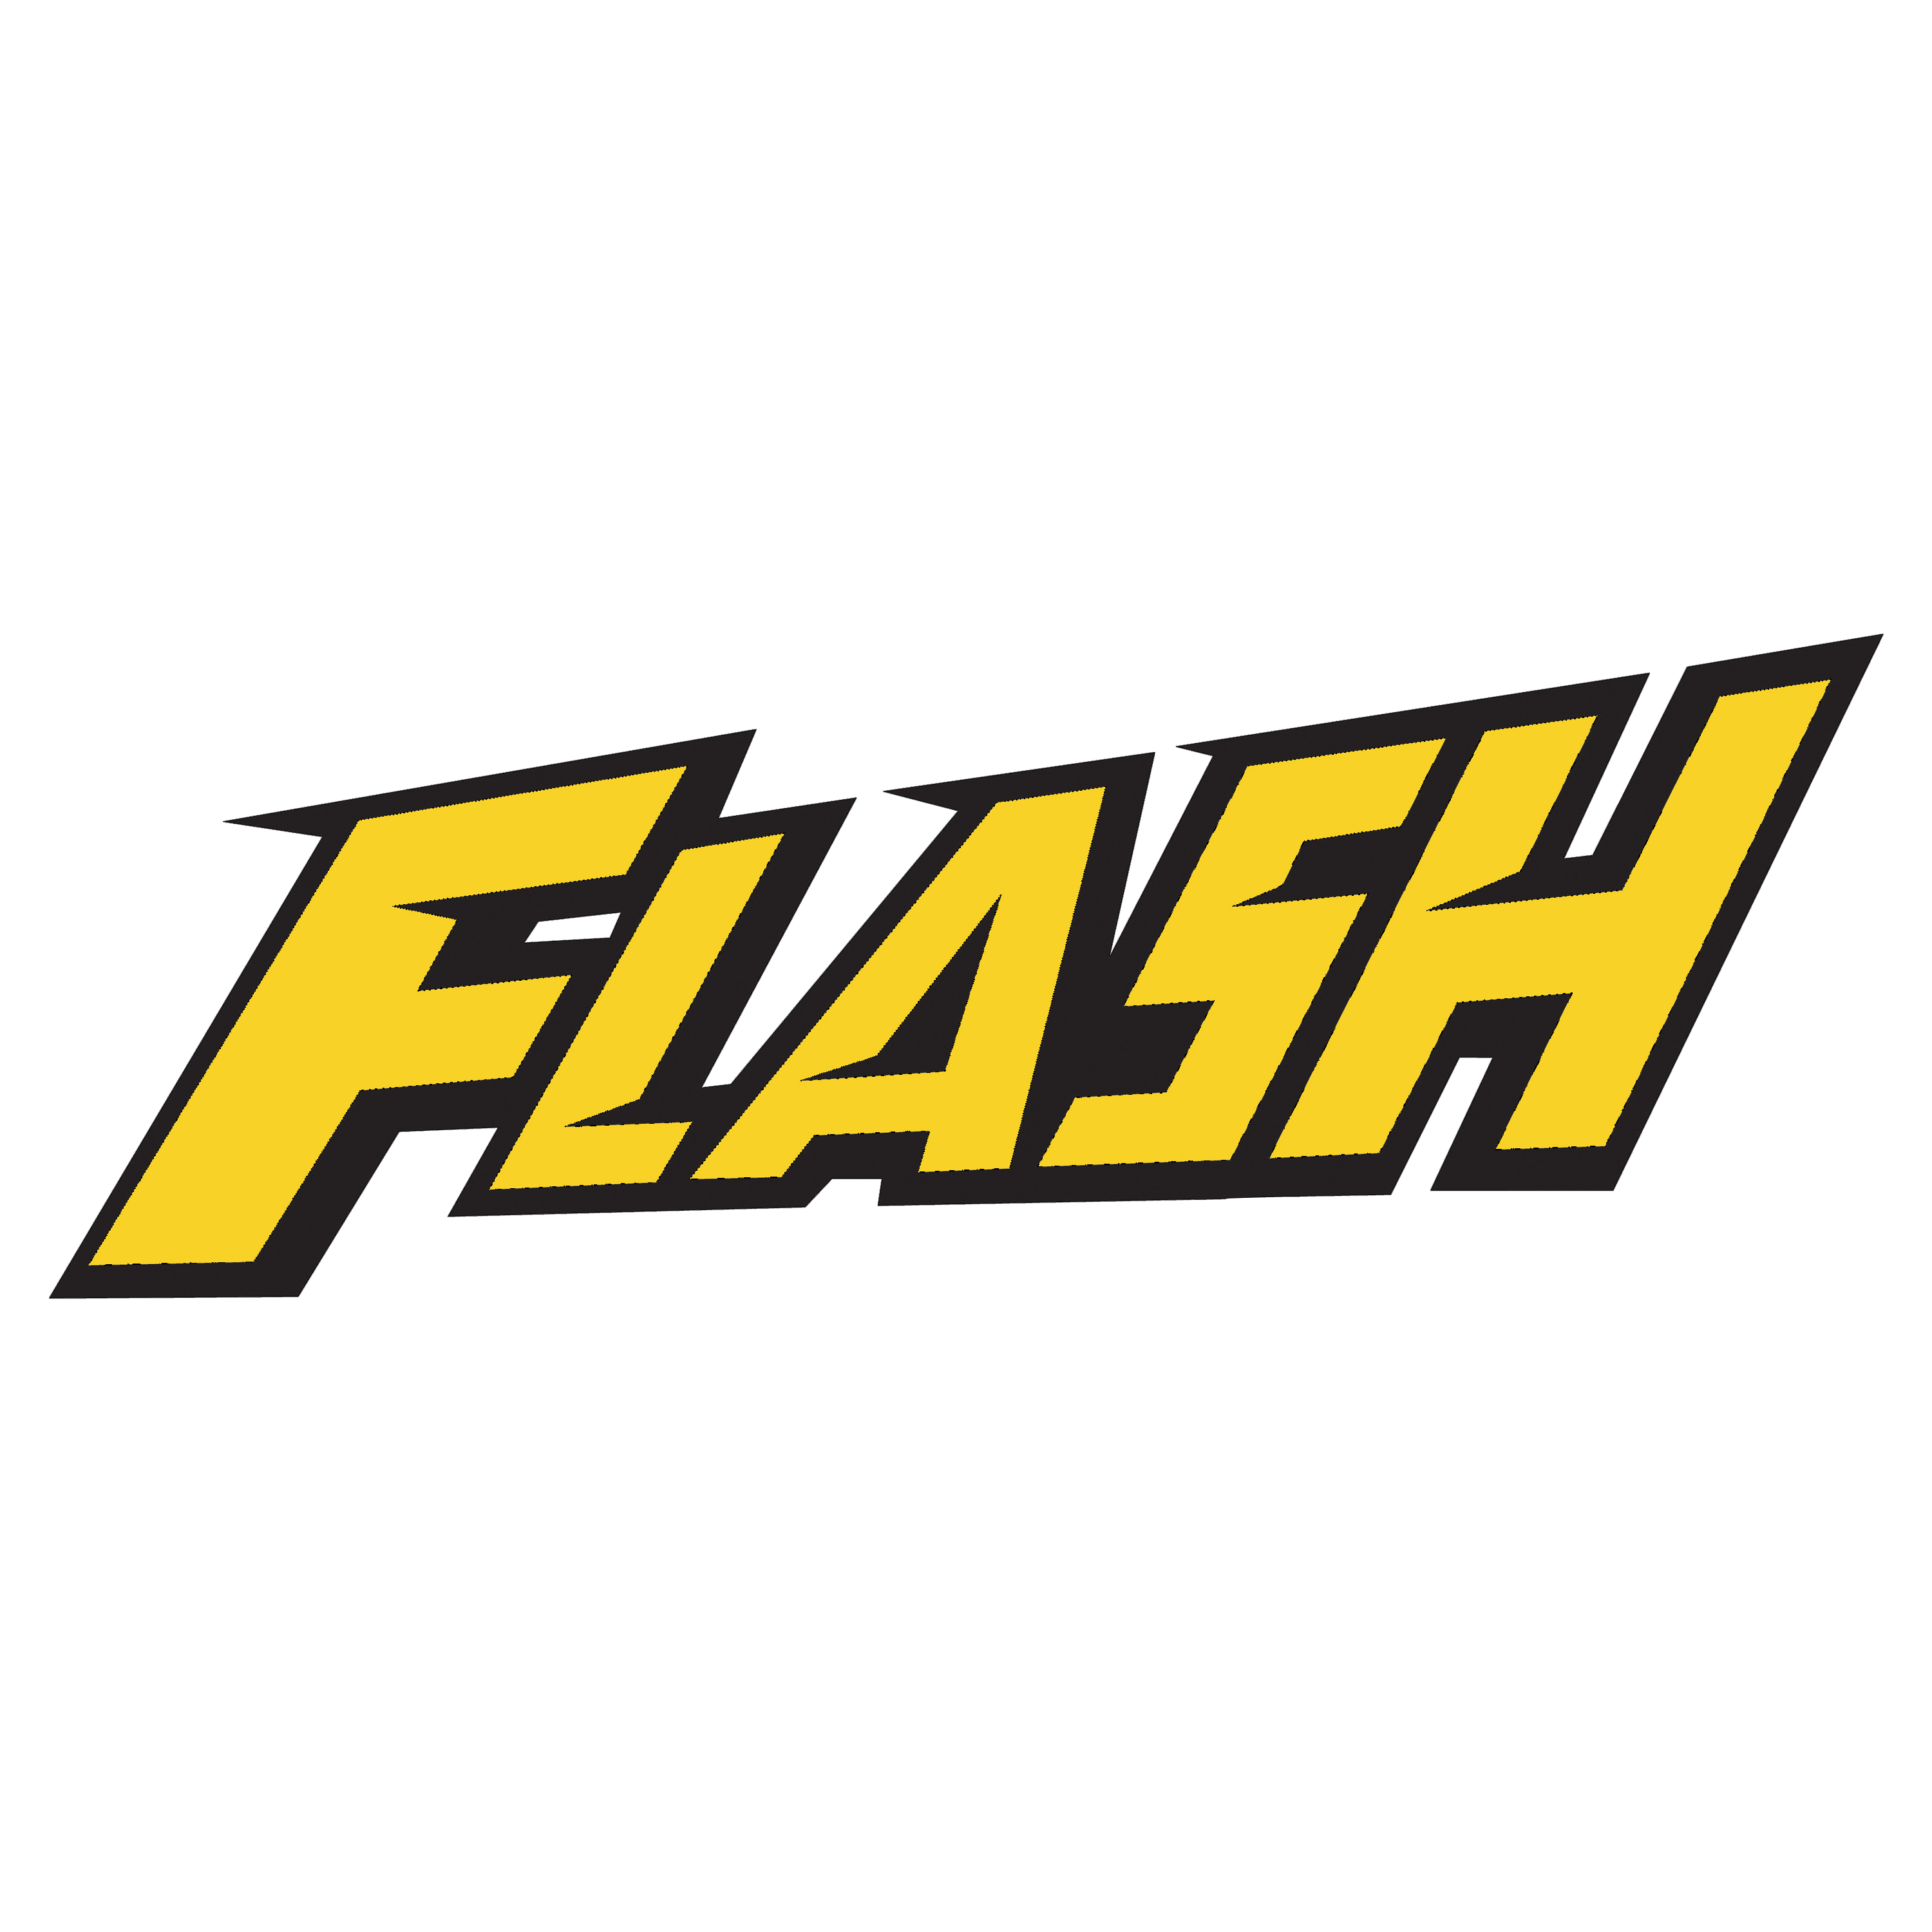 """Flash"" logo Volume 2 (Version 3) recreated with"